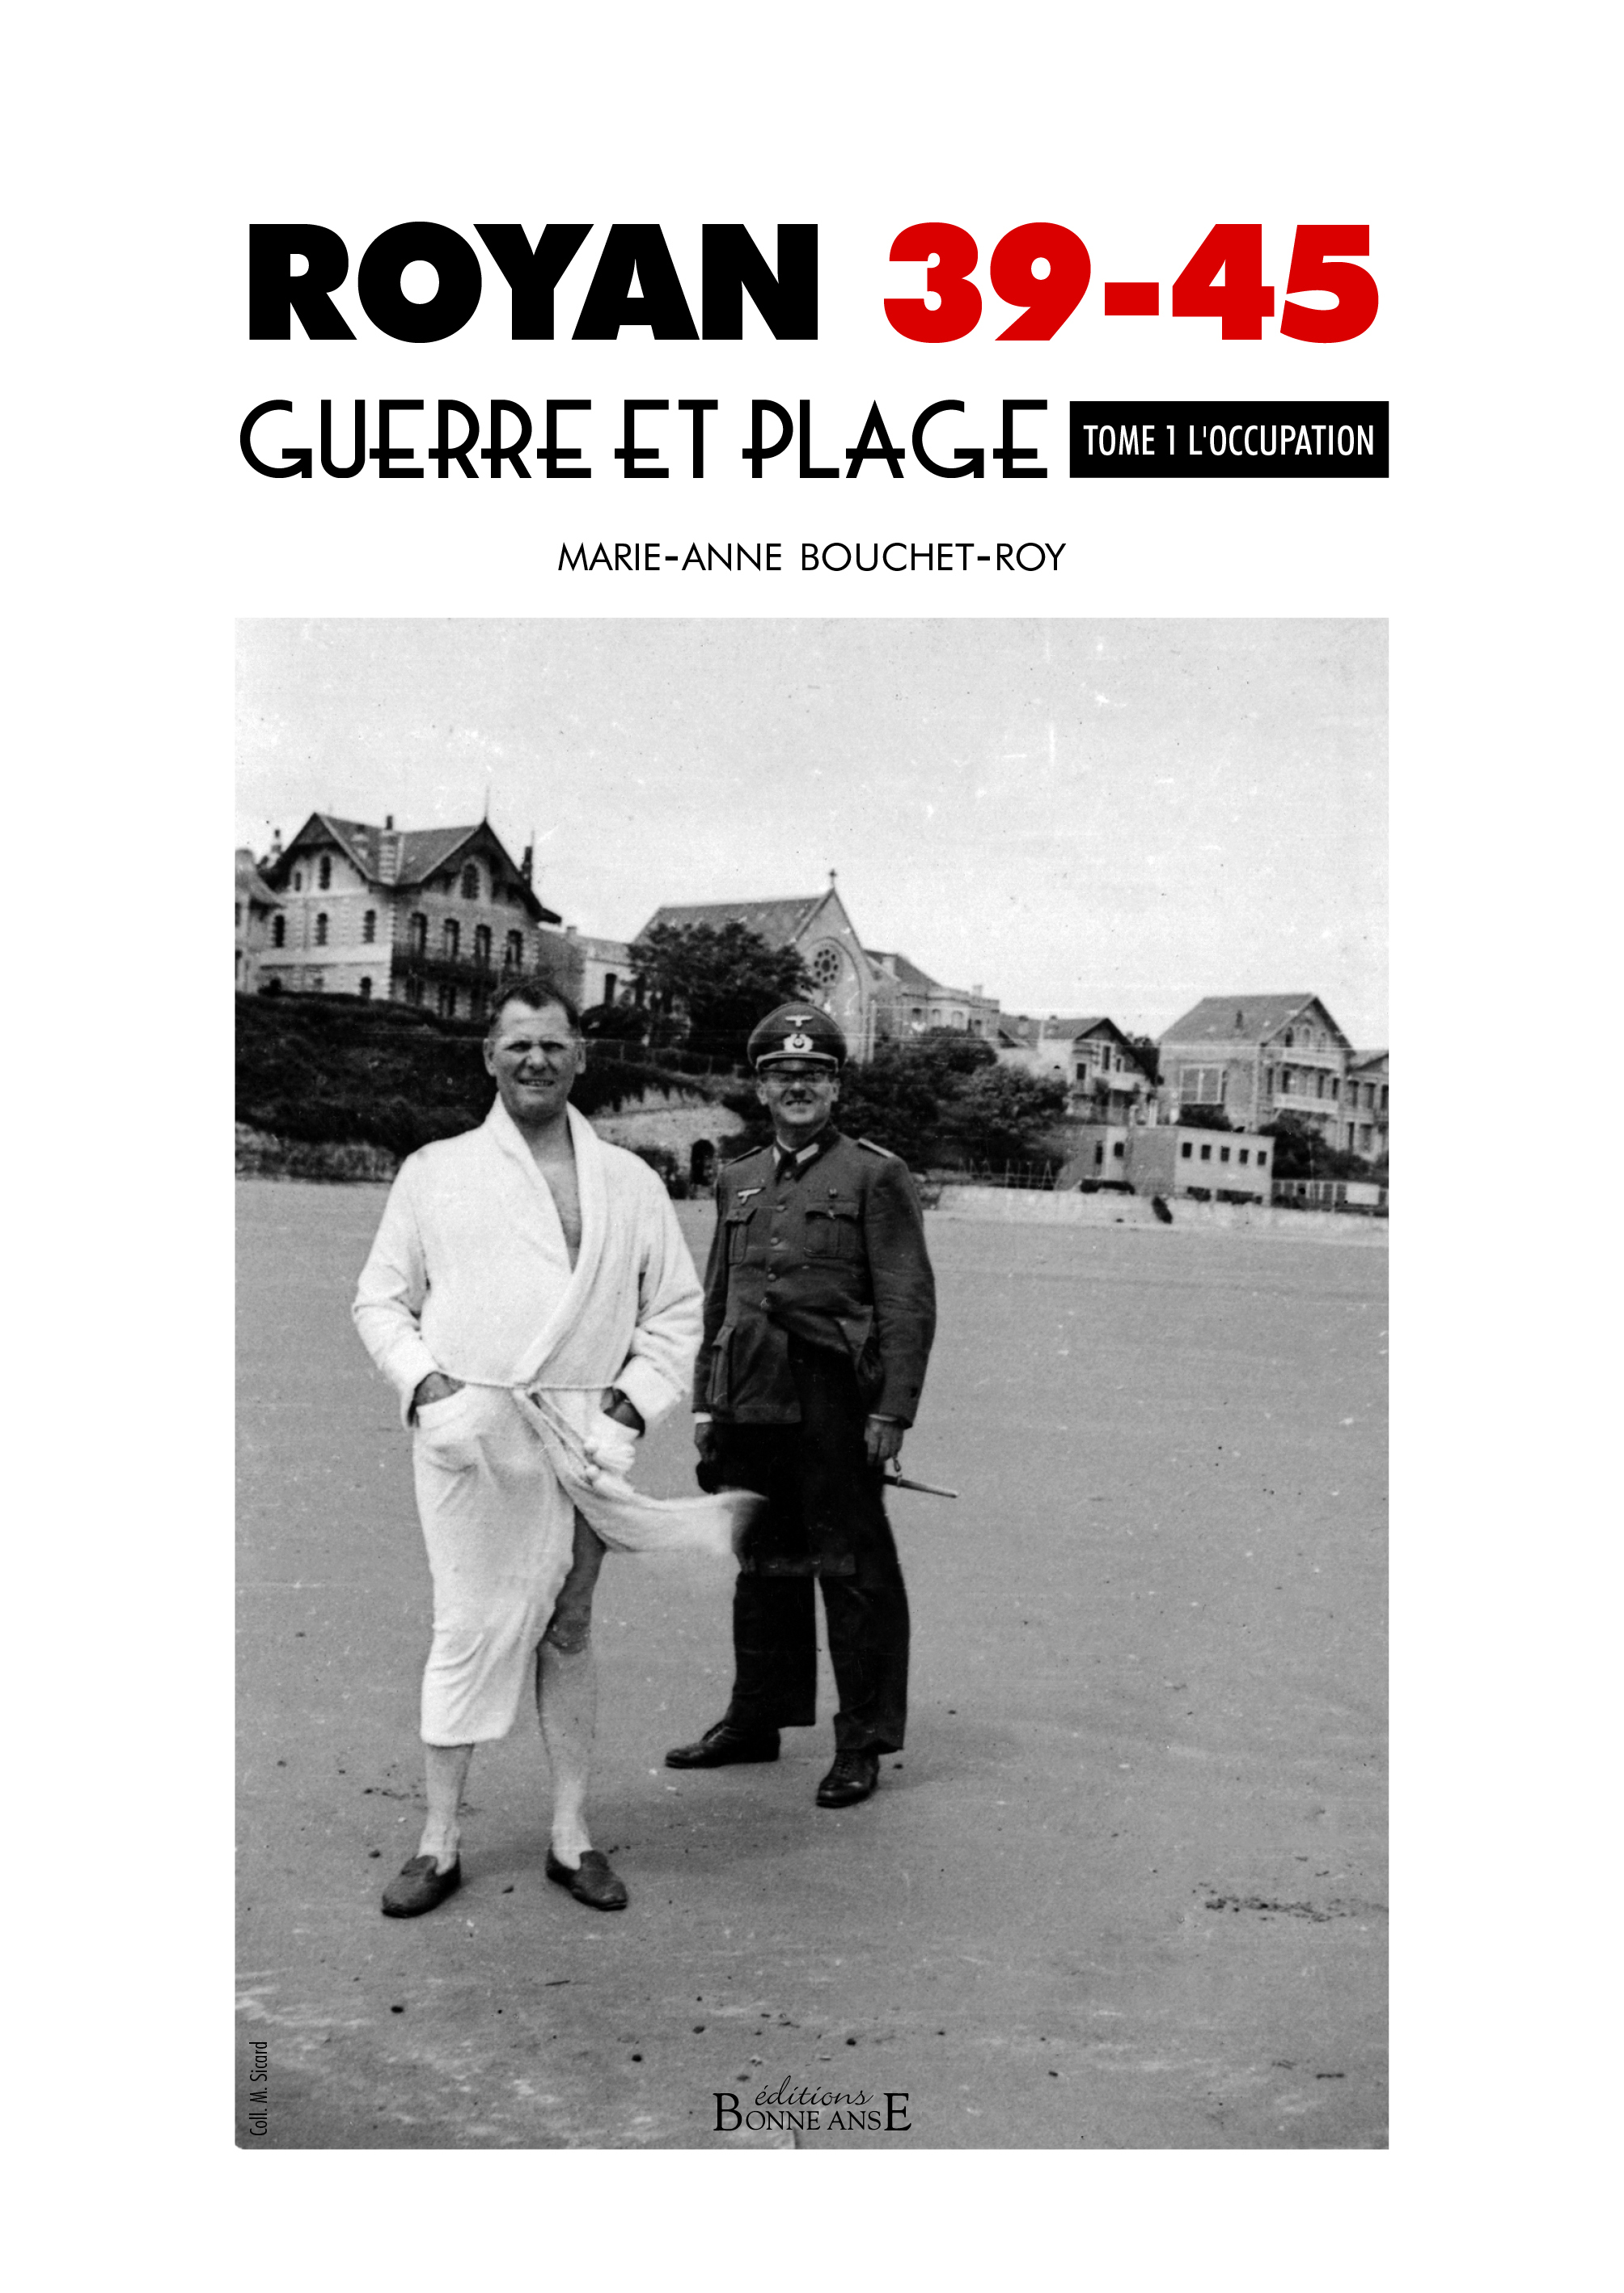 ROYAN 39-45, GUERRE ET PLAGE - TOME 1 L'OCCUPATION